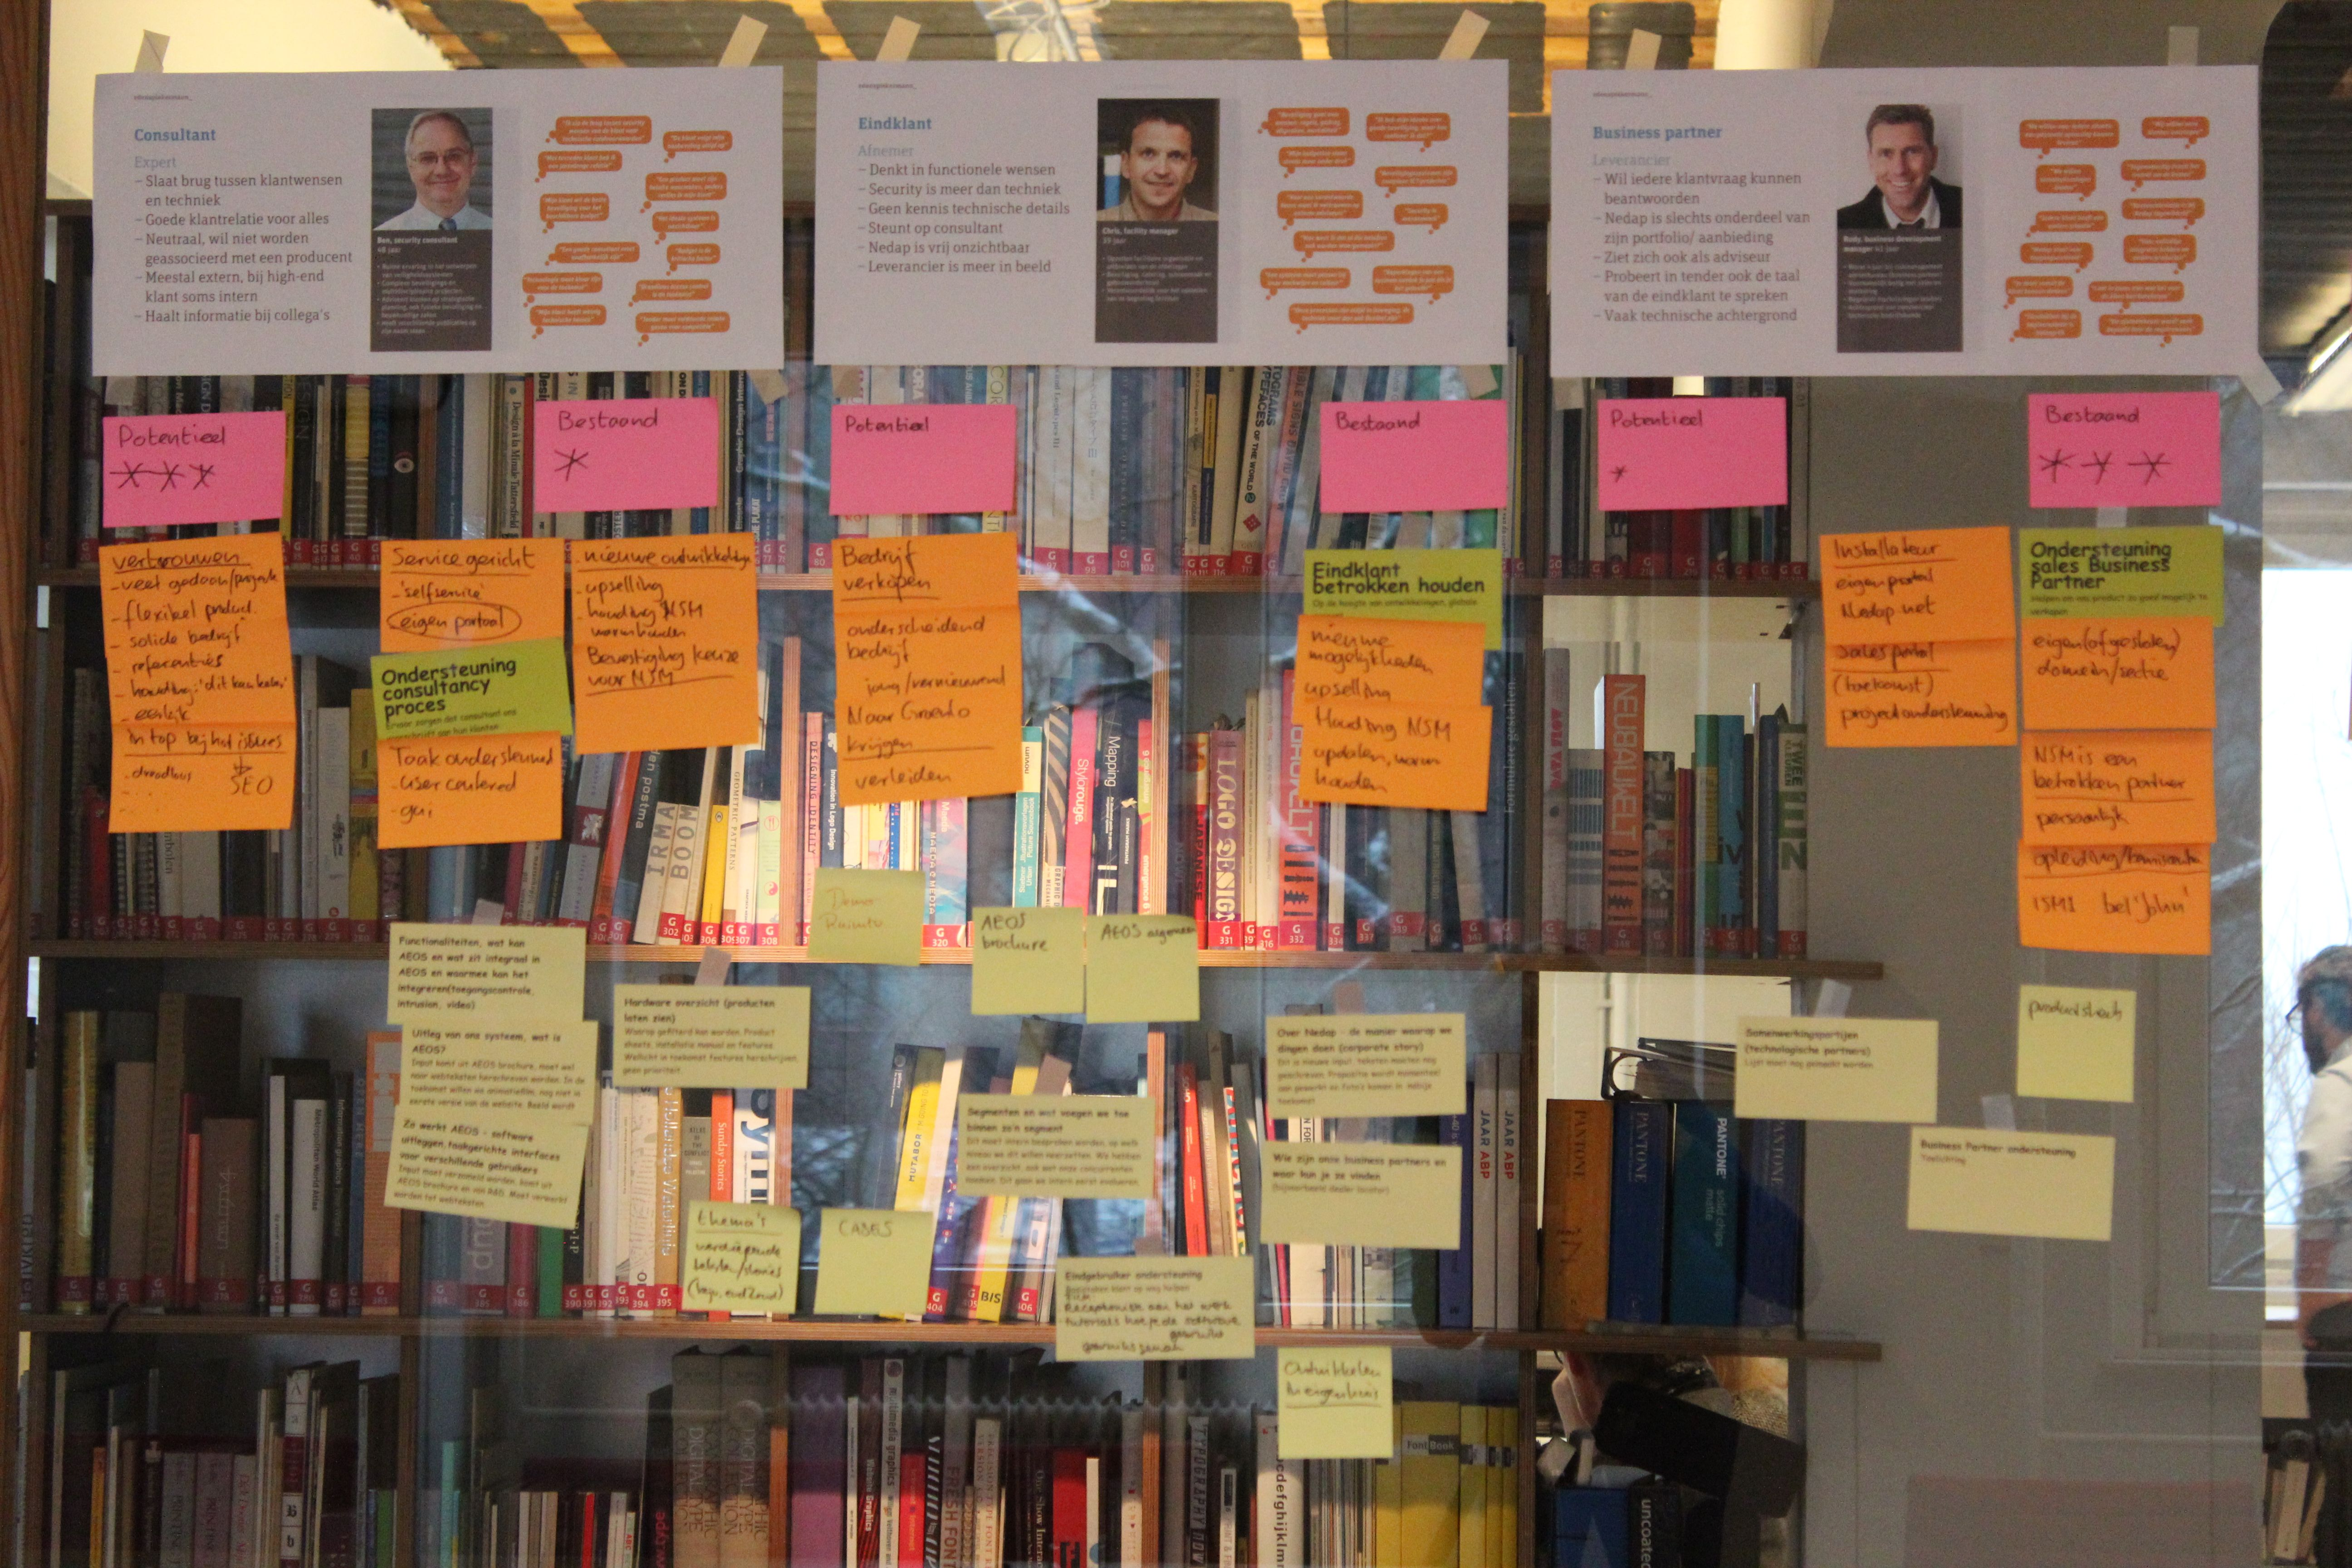 Edenspiekermann - persona's and customer journey mapping